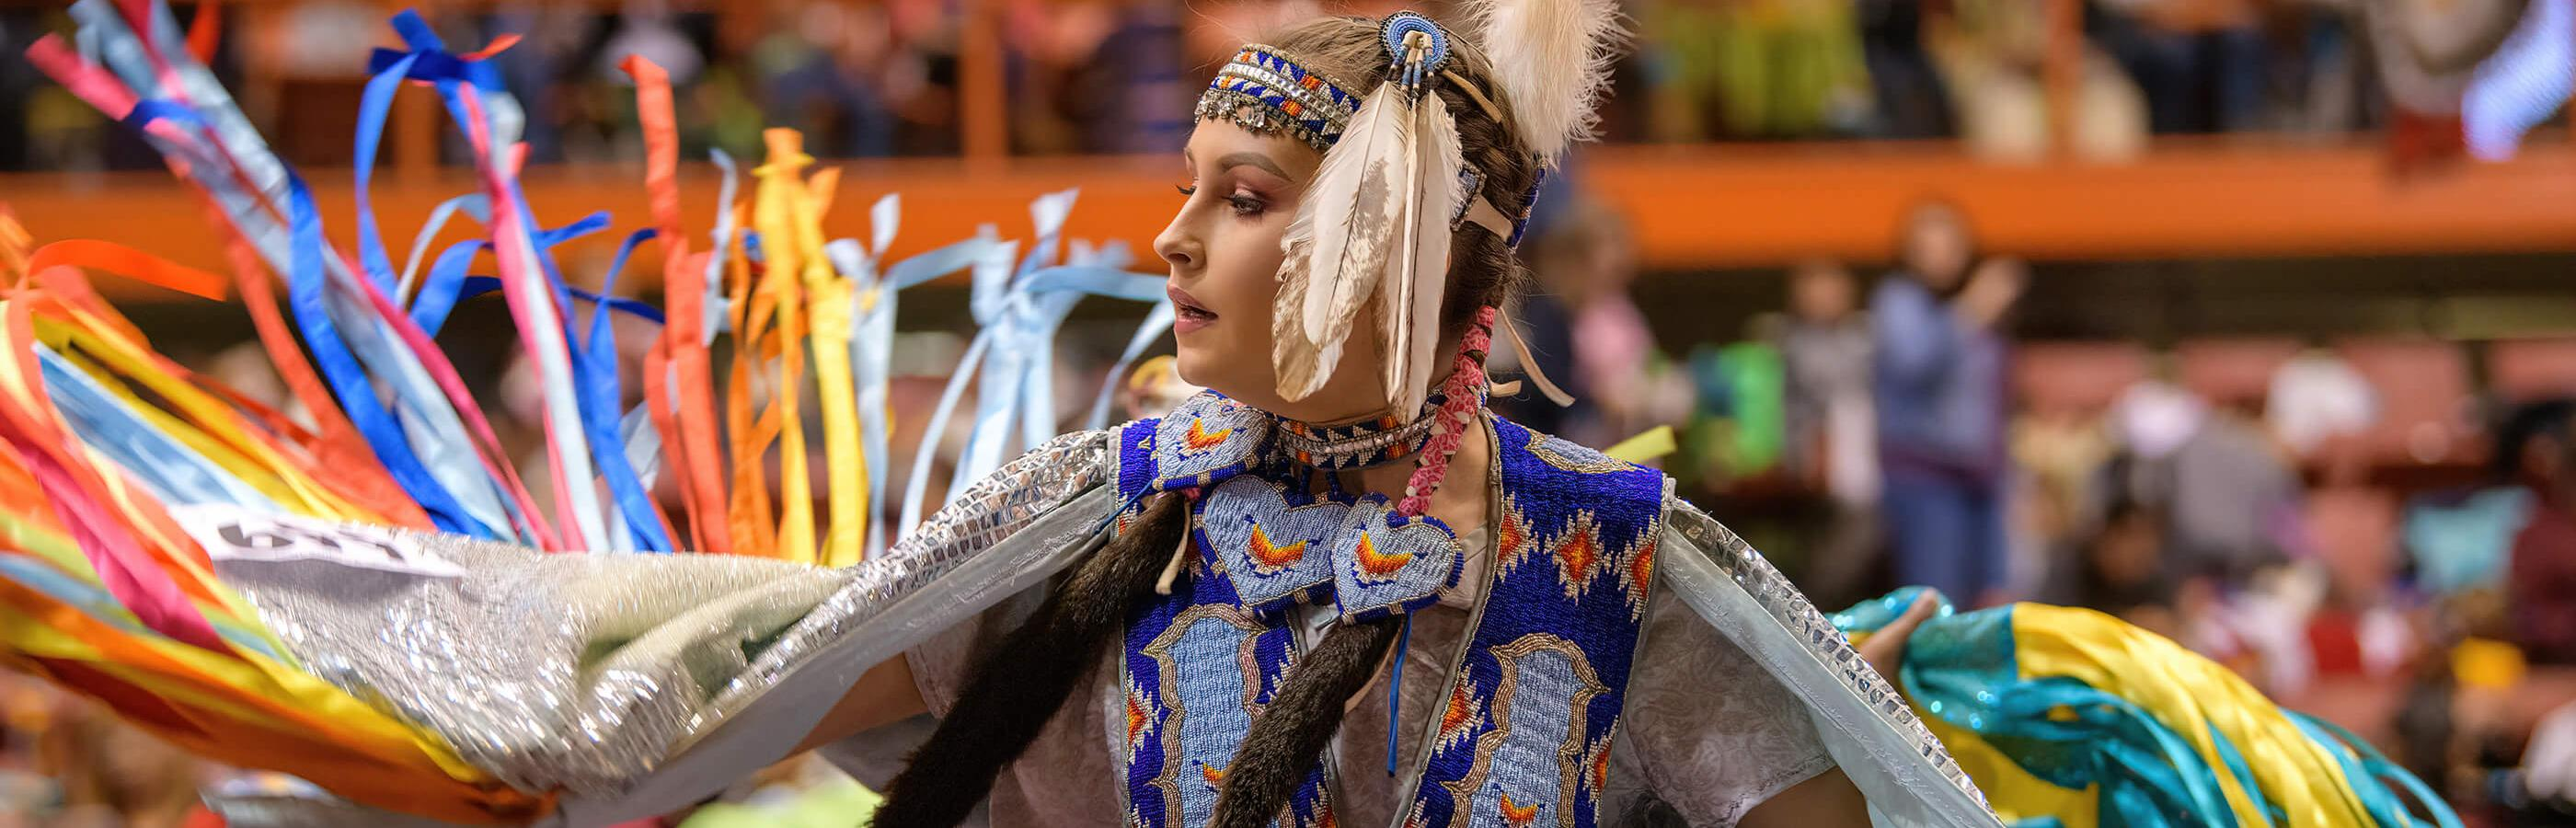 Native American Dancer At The Black Hills Powwow